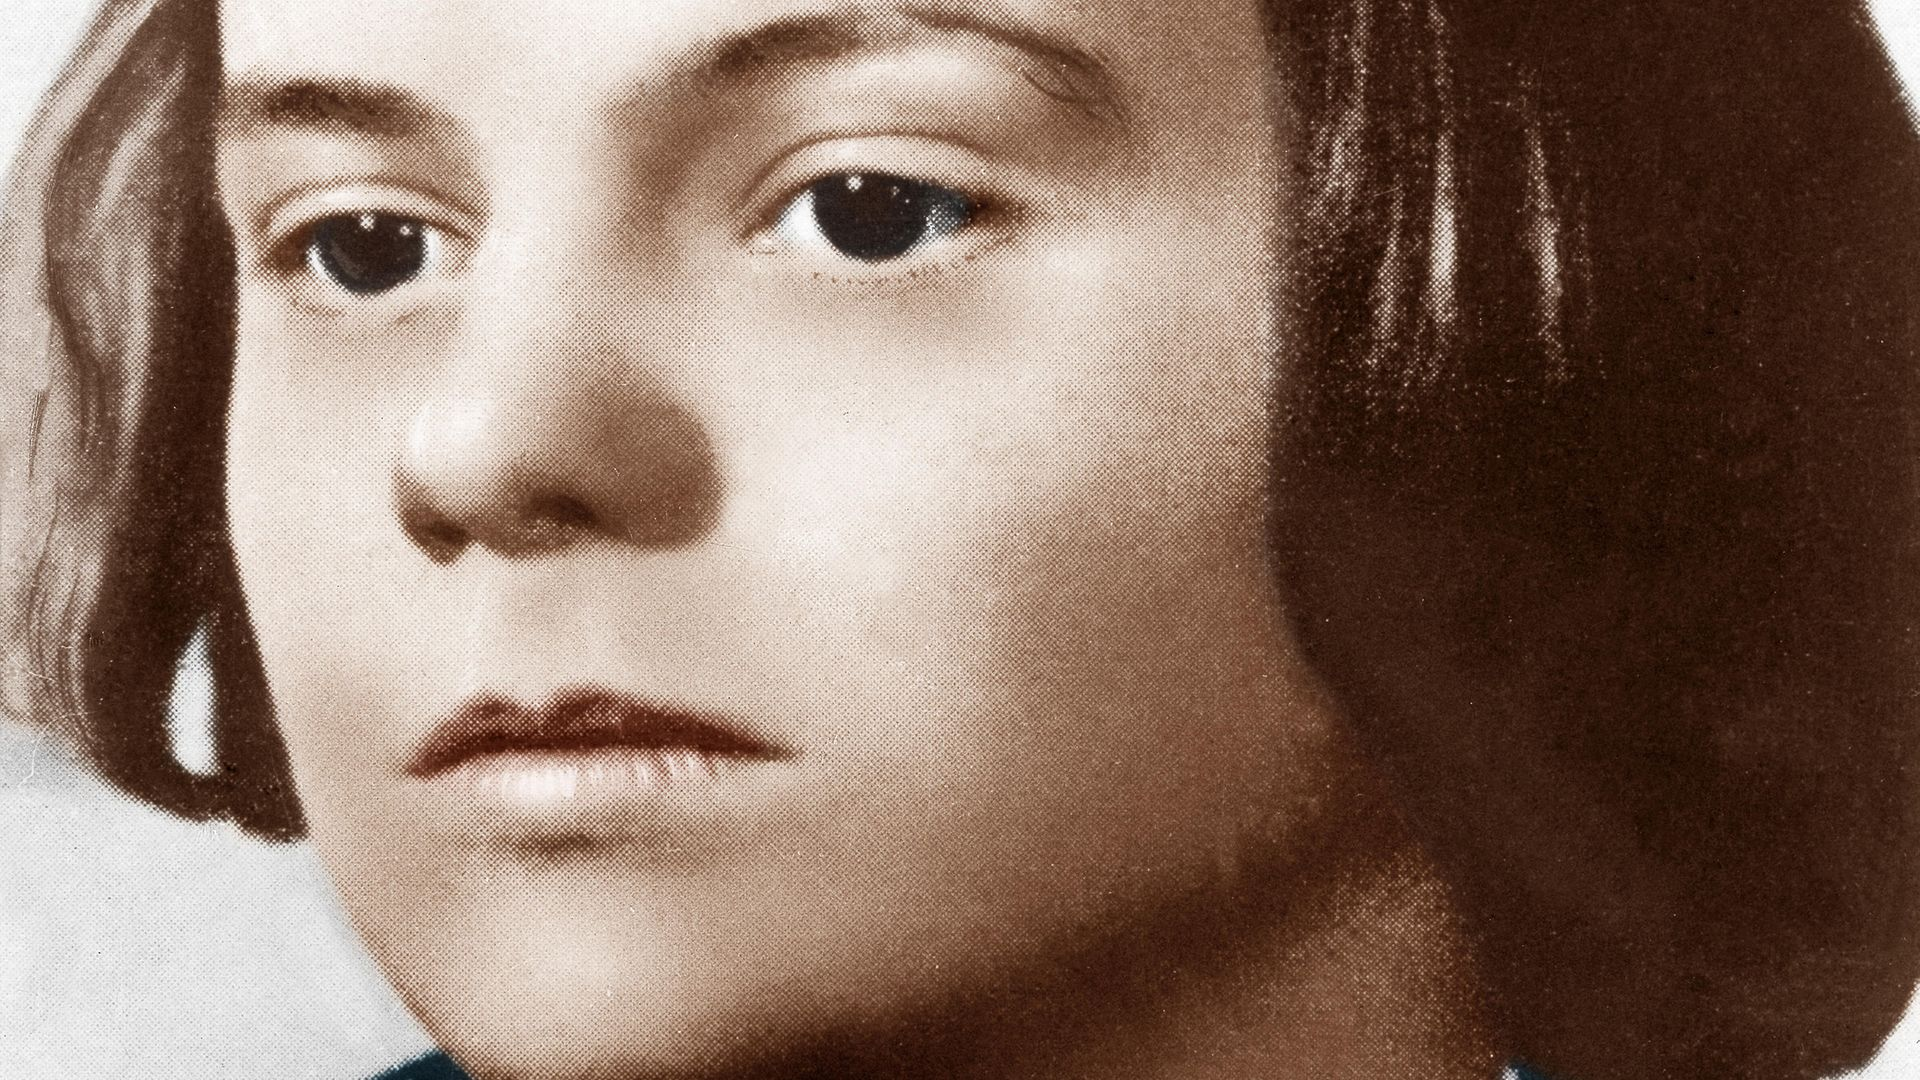 Sophie Scholl, a member of the White Rose resistance group, executed by the Nazis - Credit: ullstein bild via Getty Images